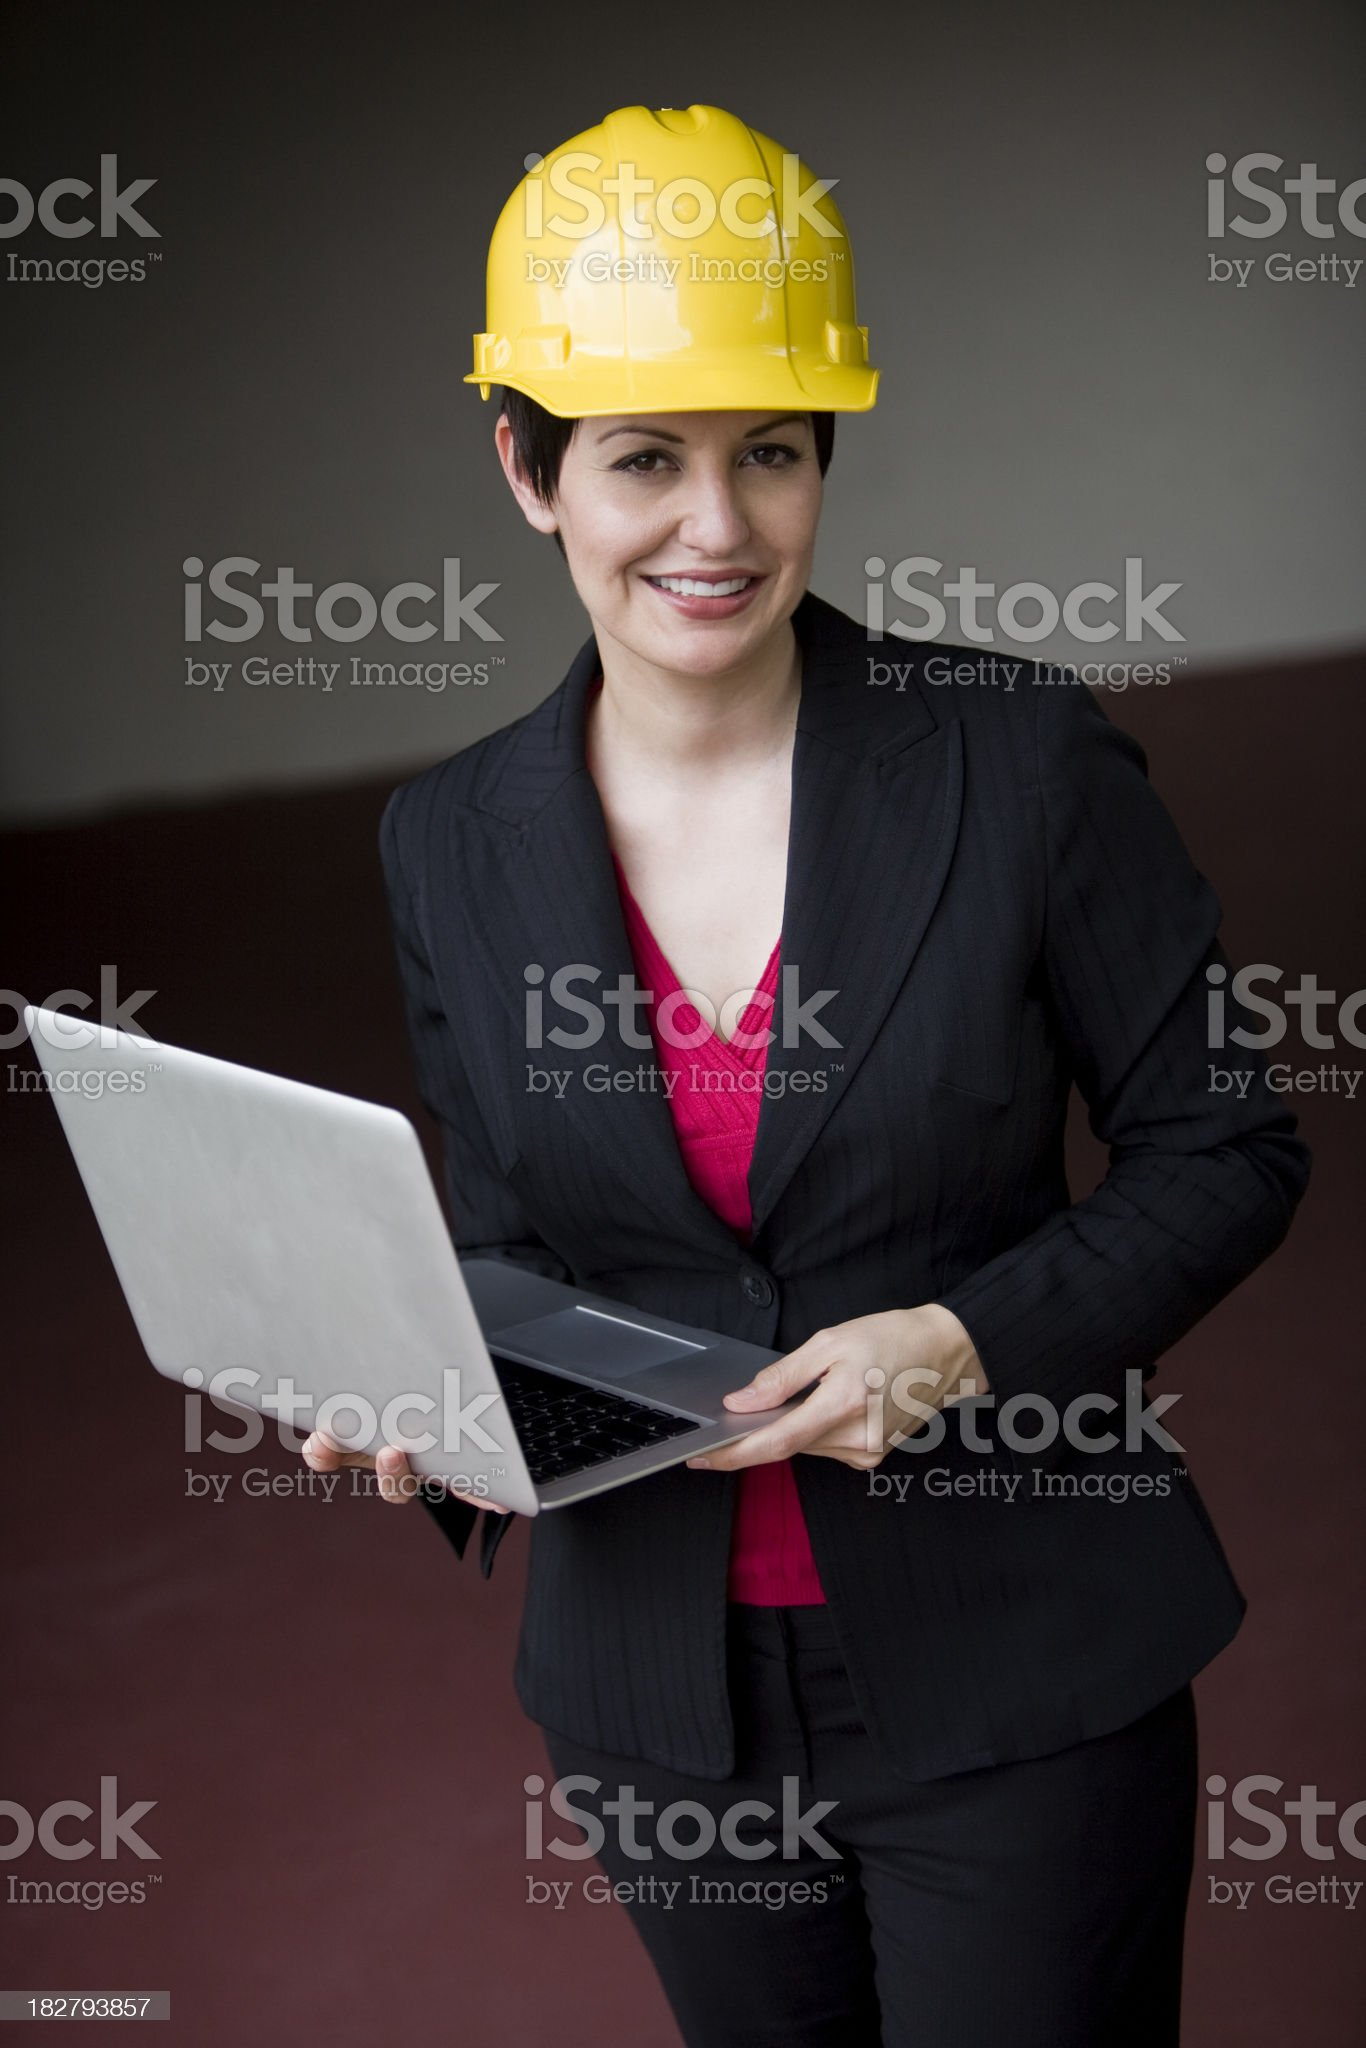 Mid adult female wearing suit with laptop and hard hat royalty-free stock photo